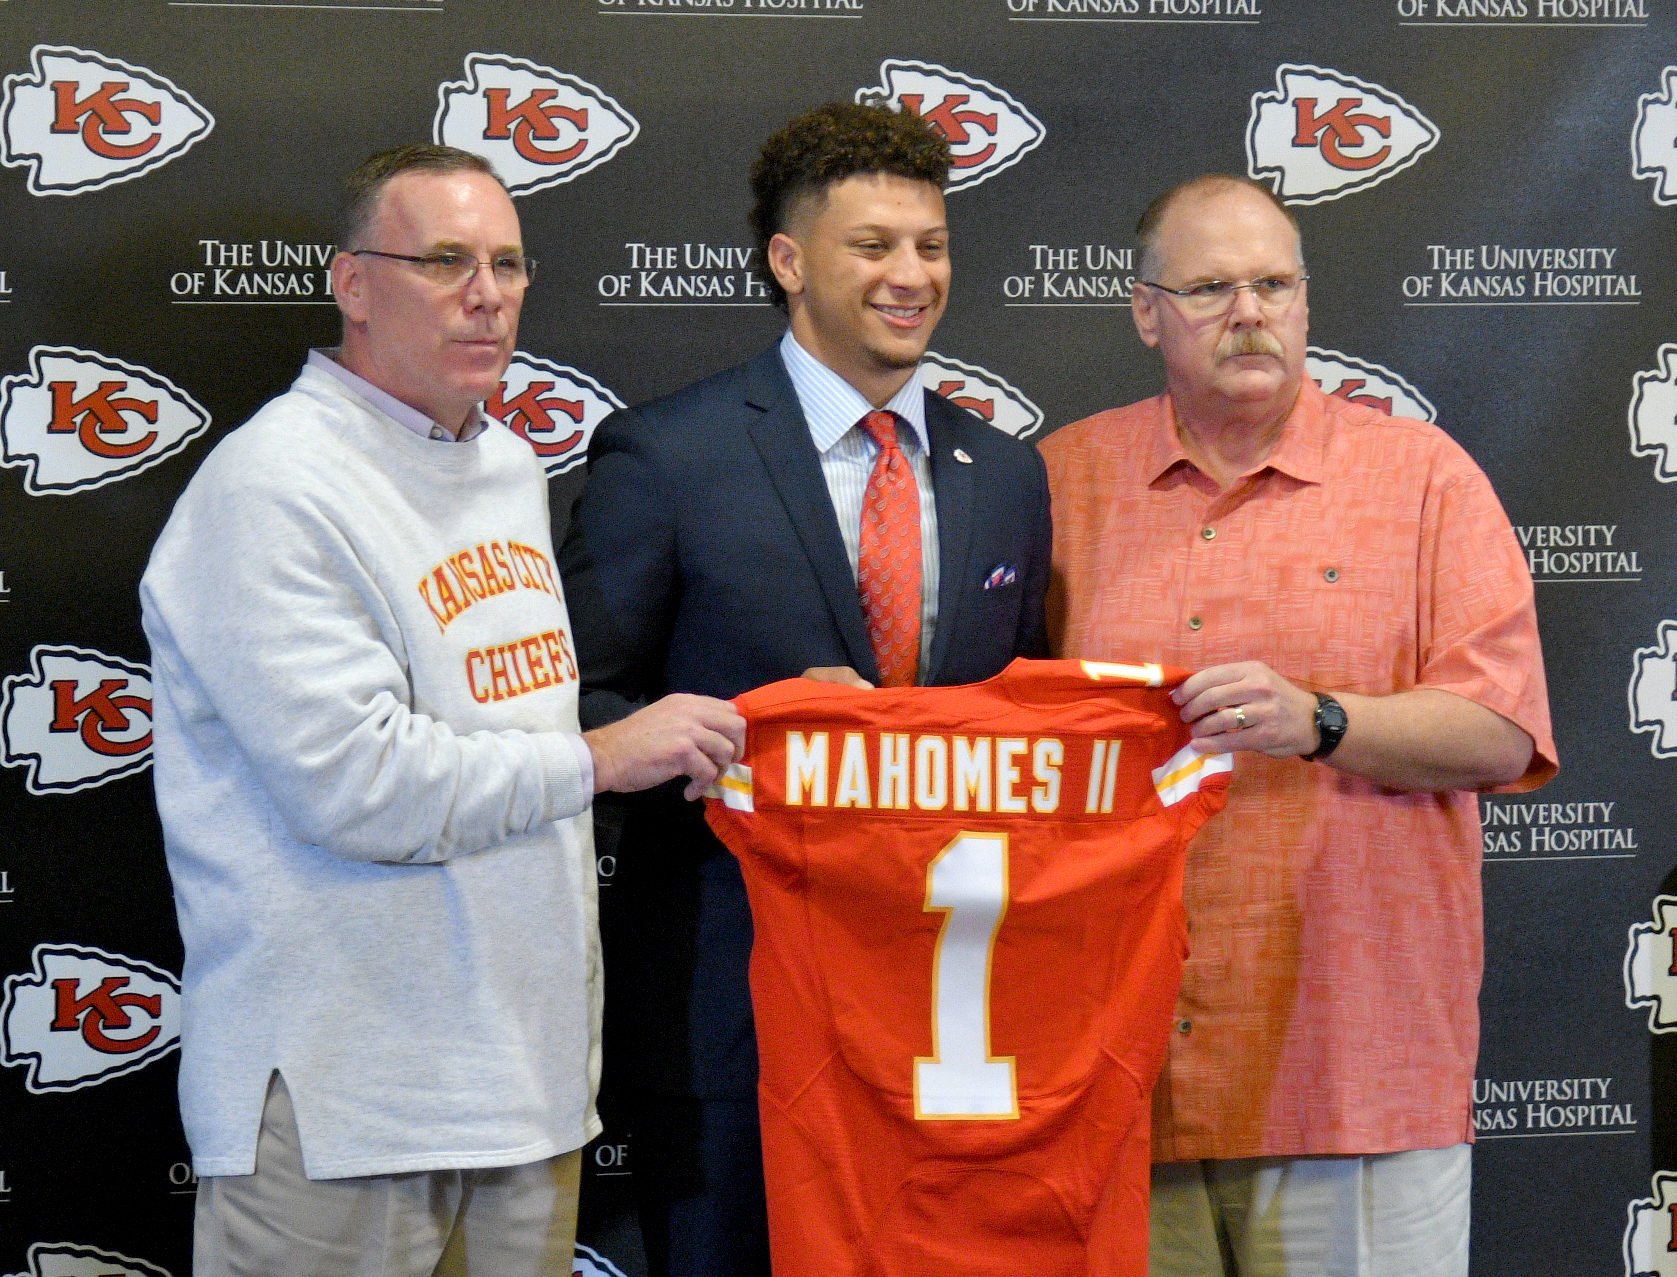 10034628-nfl-kansas-city-chiefs-patrick-mahomes-press-conference